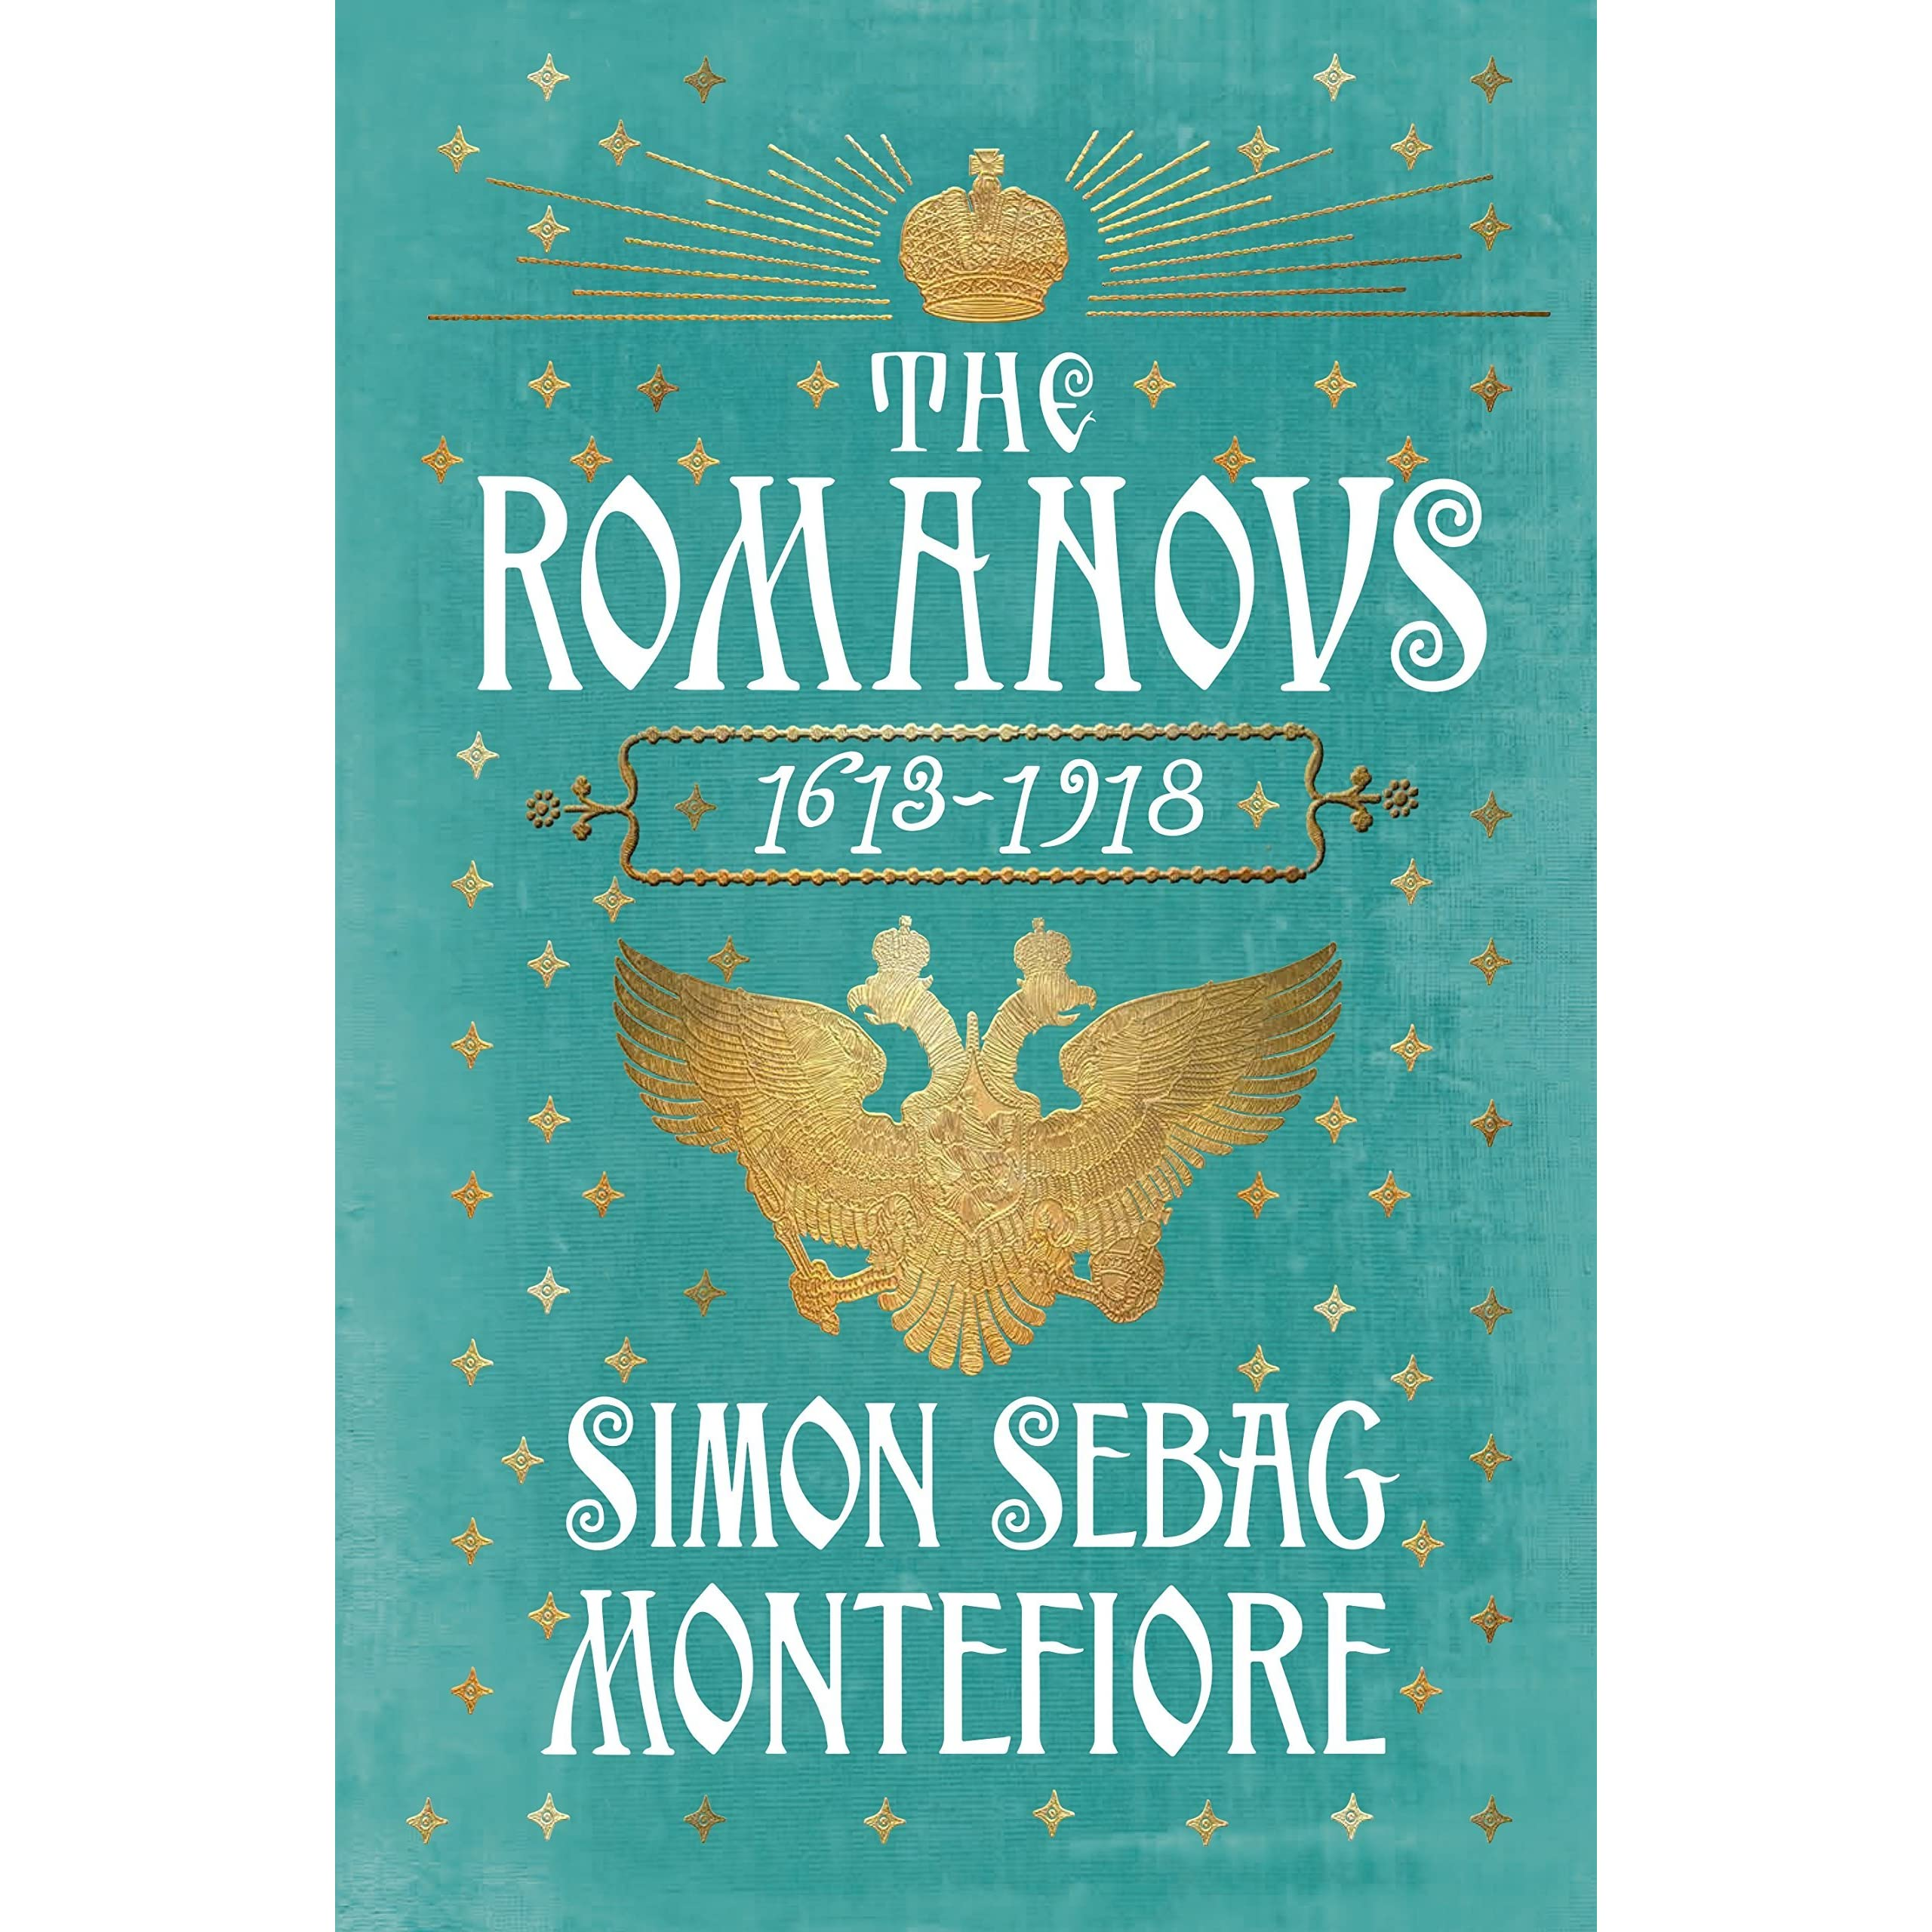 The Romanovs: 1613-1918 by Simon Sebag Montefiore